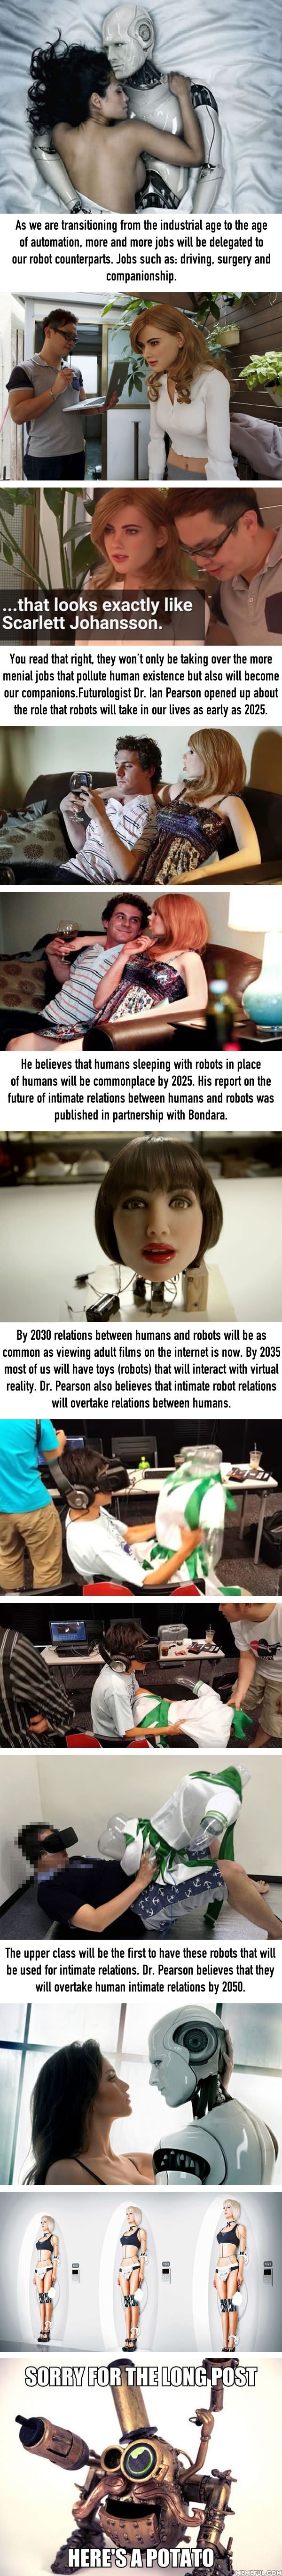 Pleasure robots are being made to replace humans by 2025